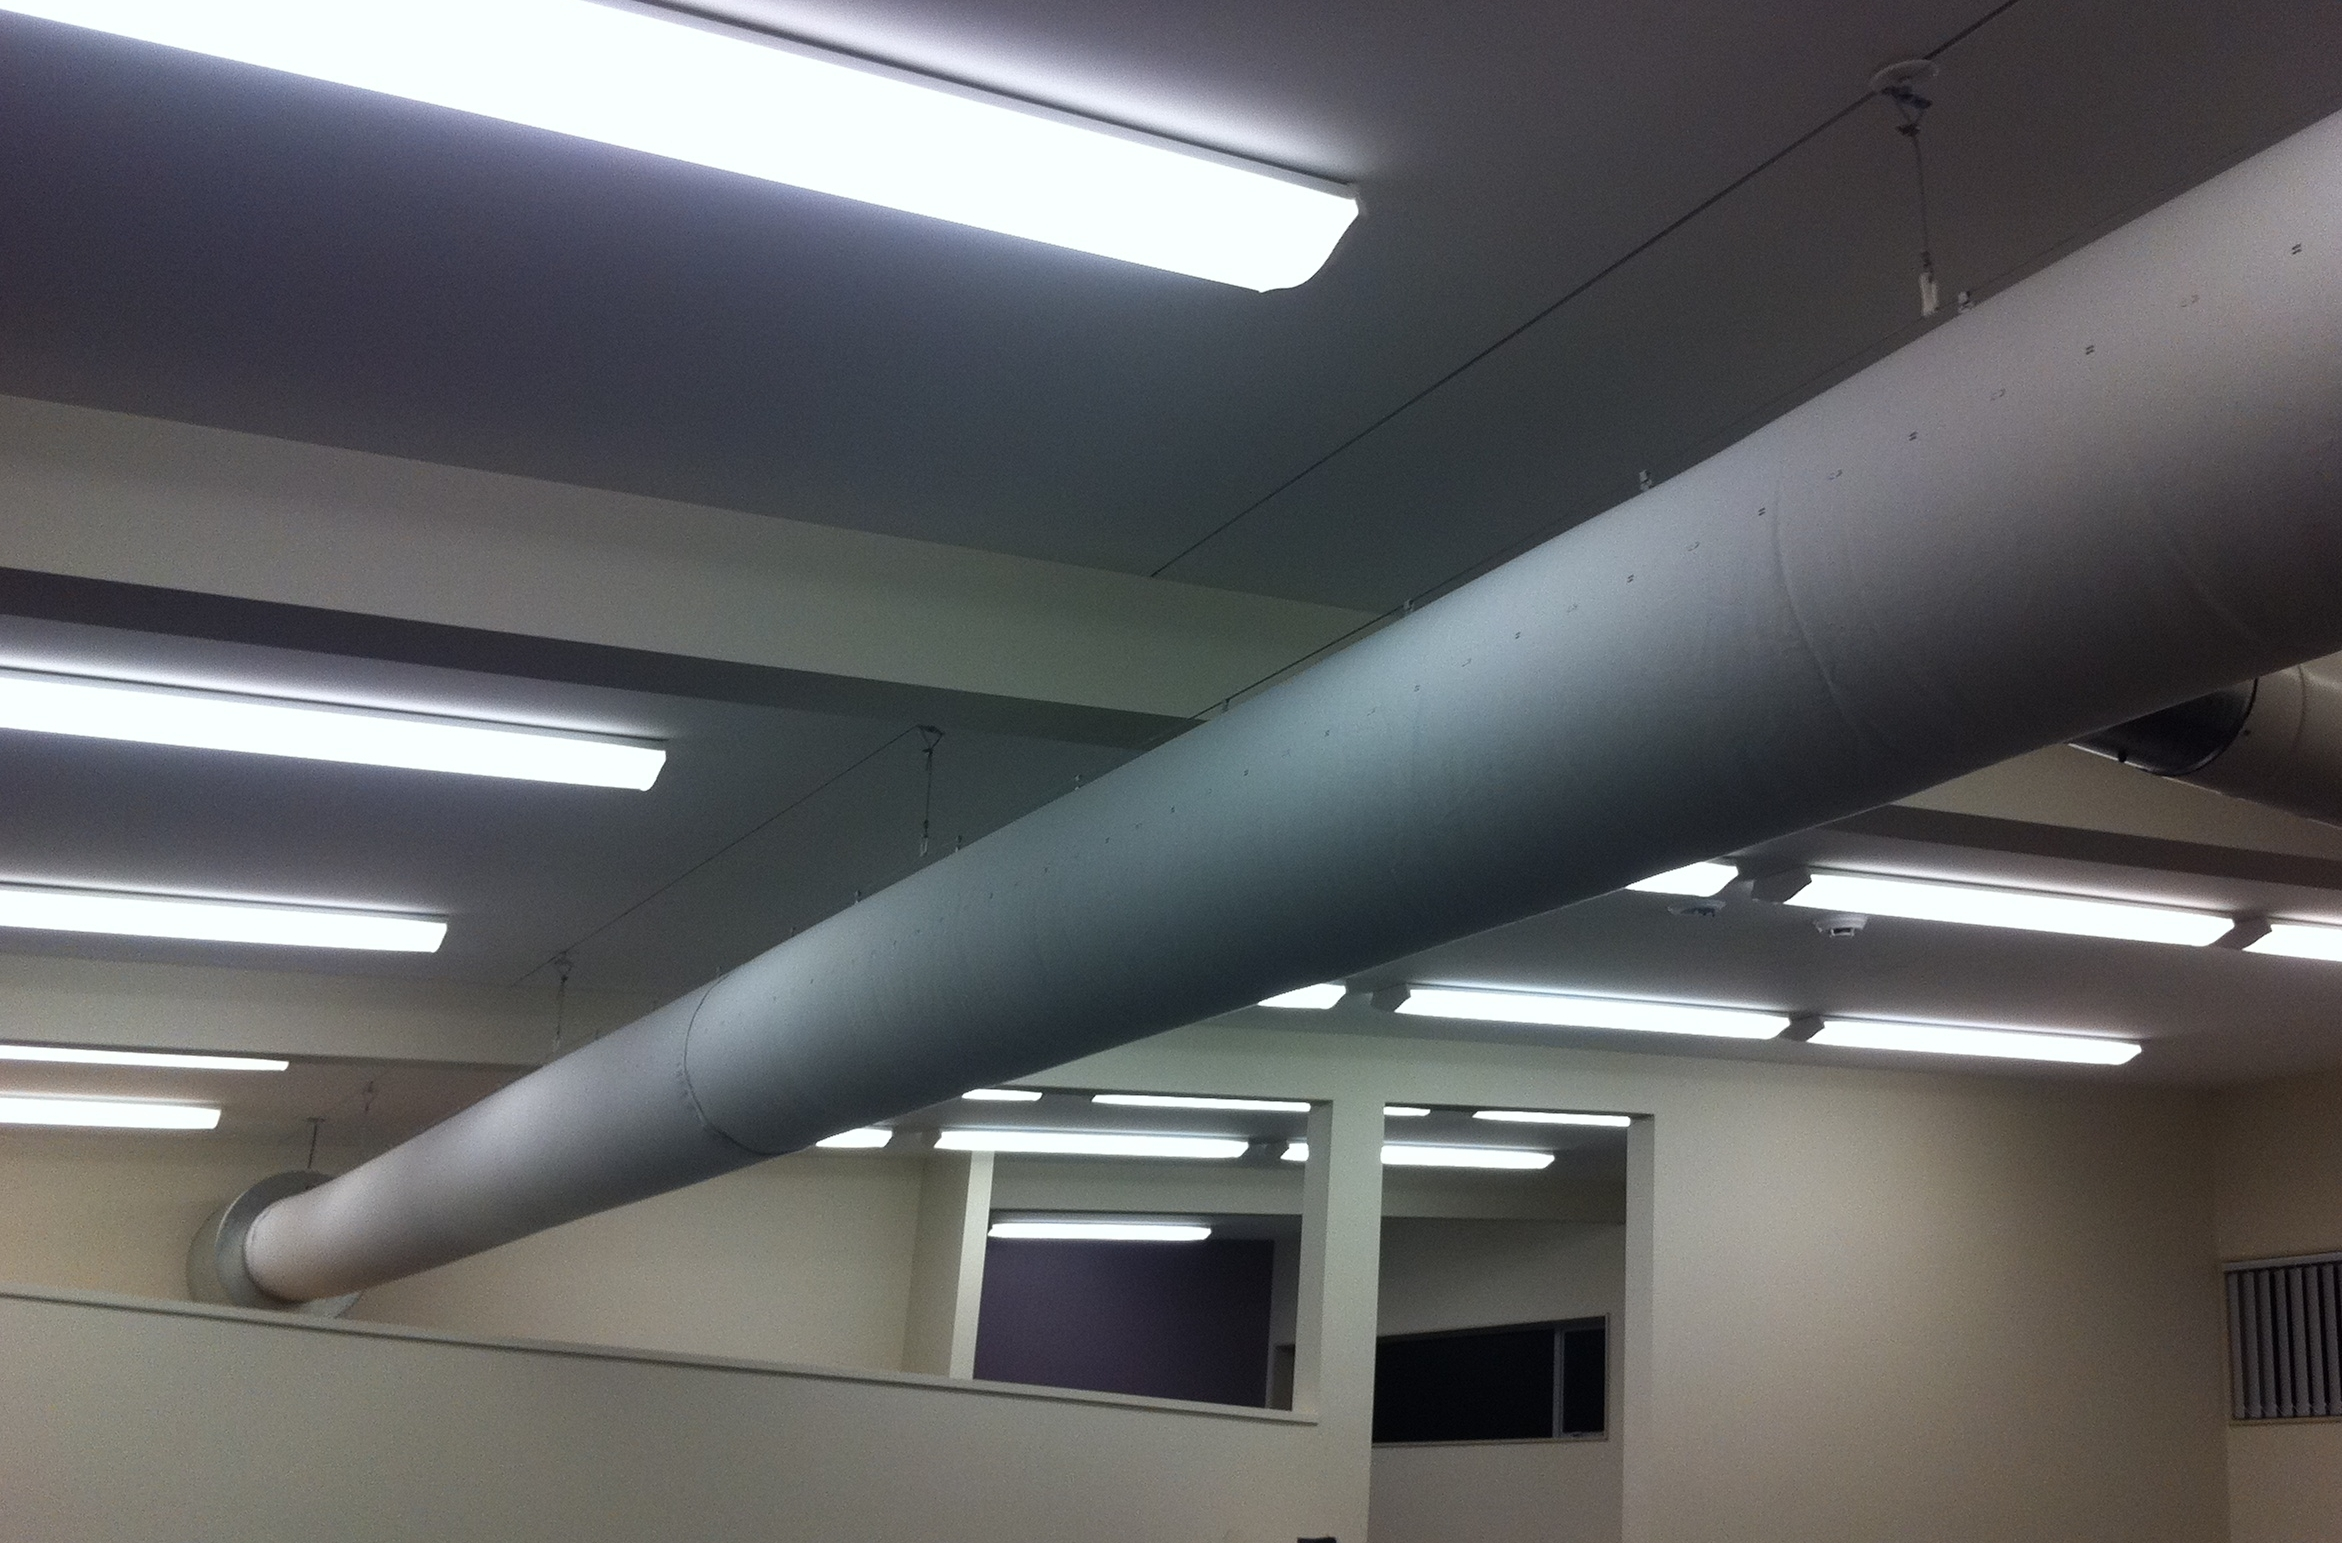 fabric_duct_electra